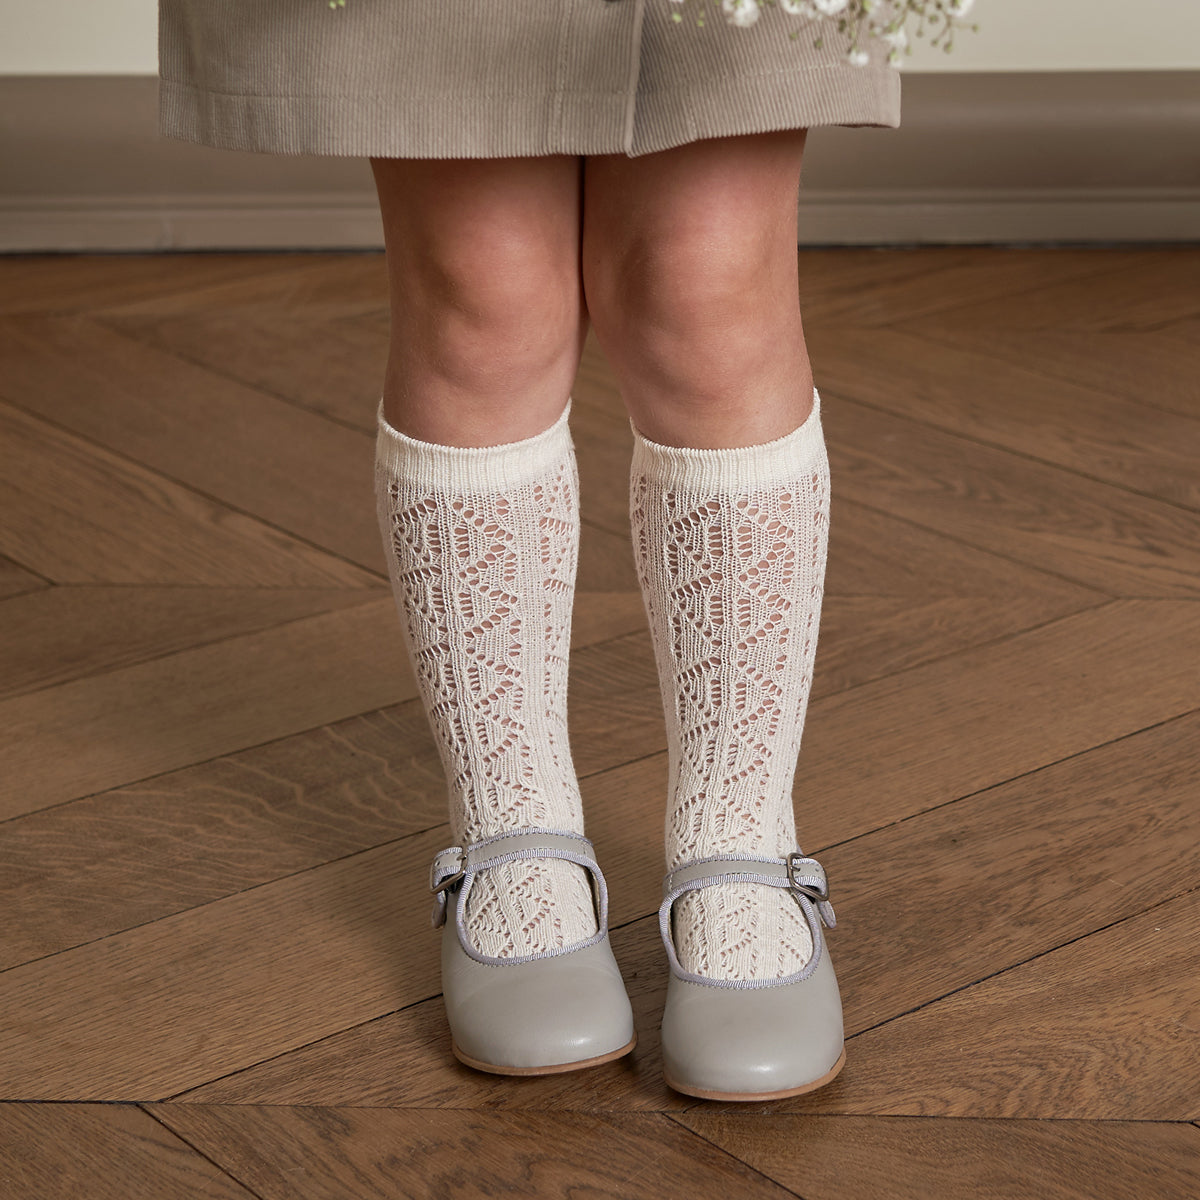 BEBE ORGANIC 'LOUISA' SOCKS, WHITE - Spinel Boutique